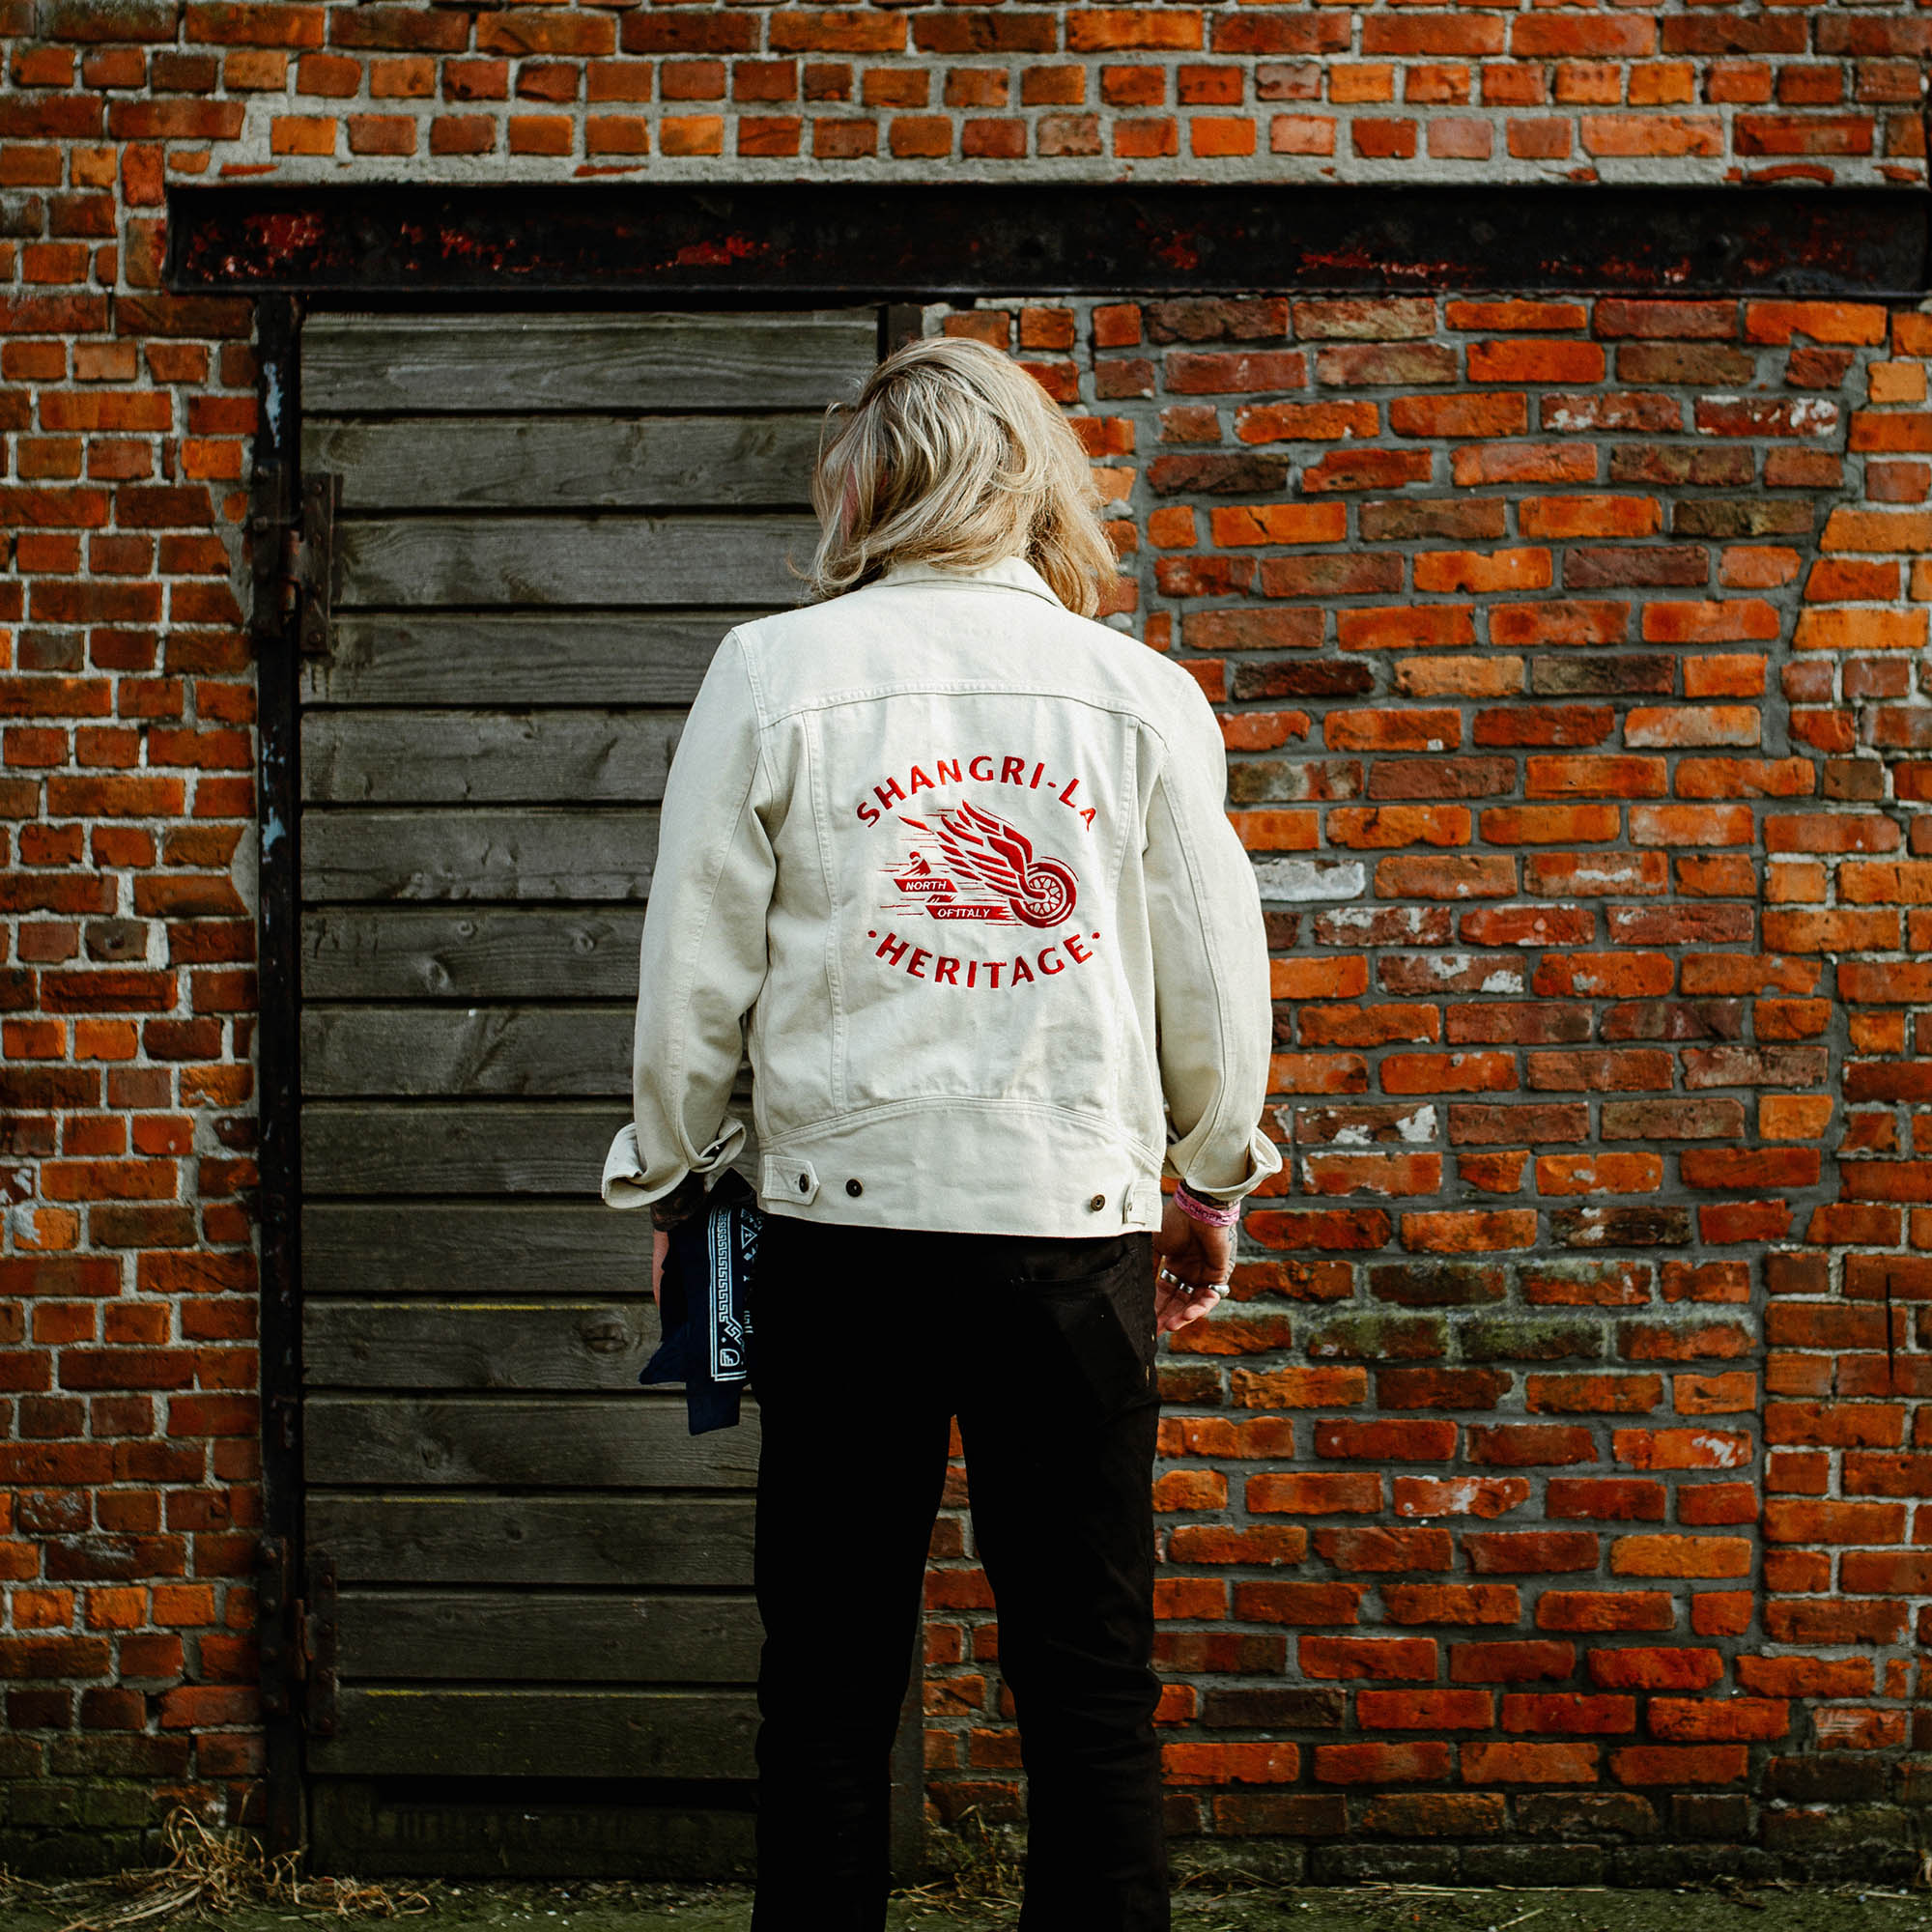 shangri-la-heritage-new-single-rider-winged-wheel-ivory-canvas-jacket-lifestyle-3